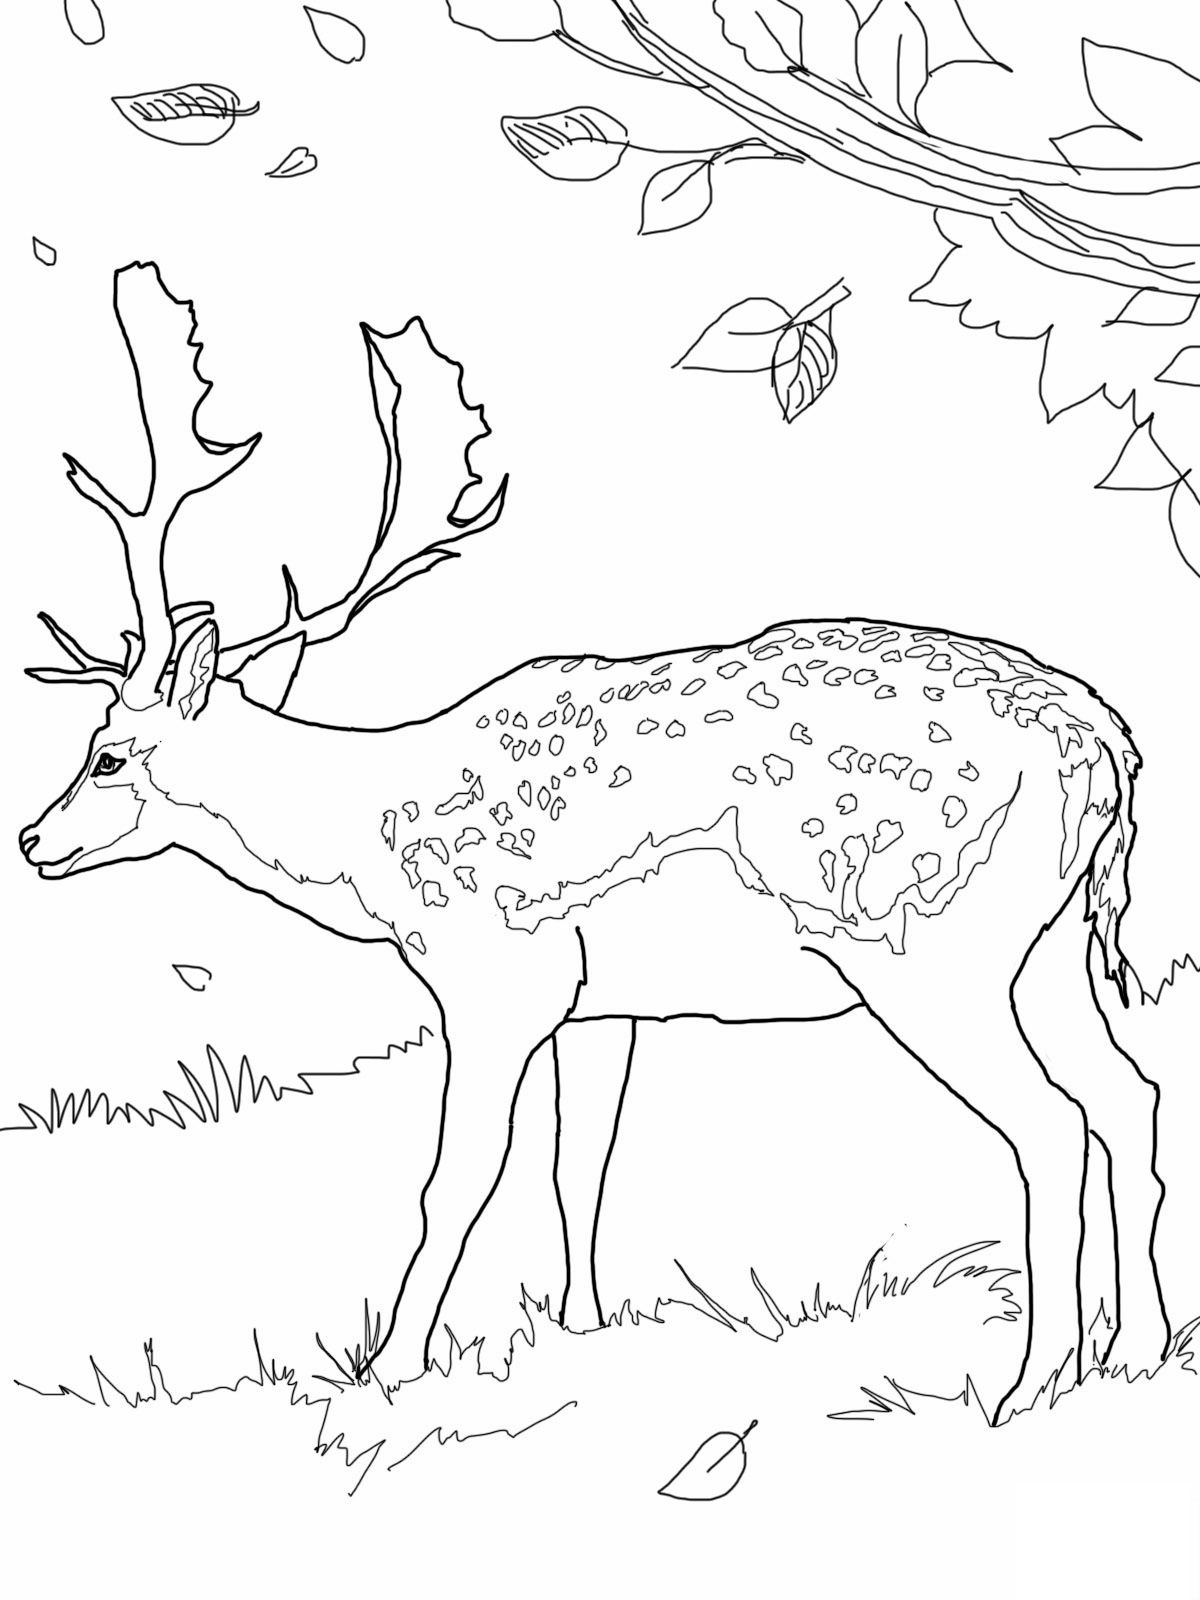 1200x1600 Free Printable Deer Coloring Pages For Kids Free Printable, Free